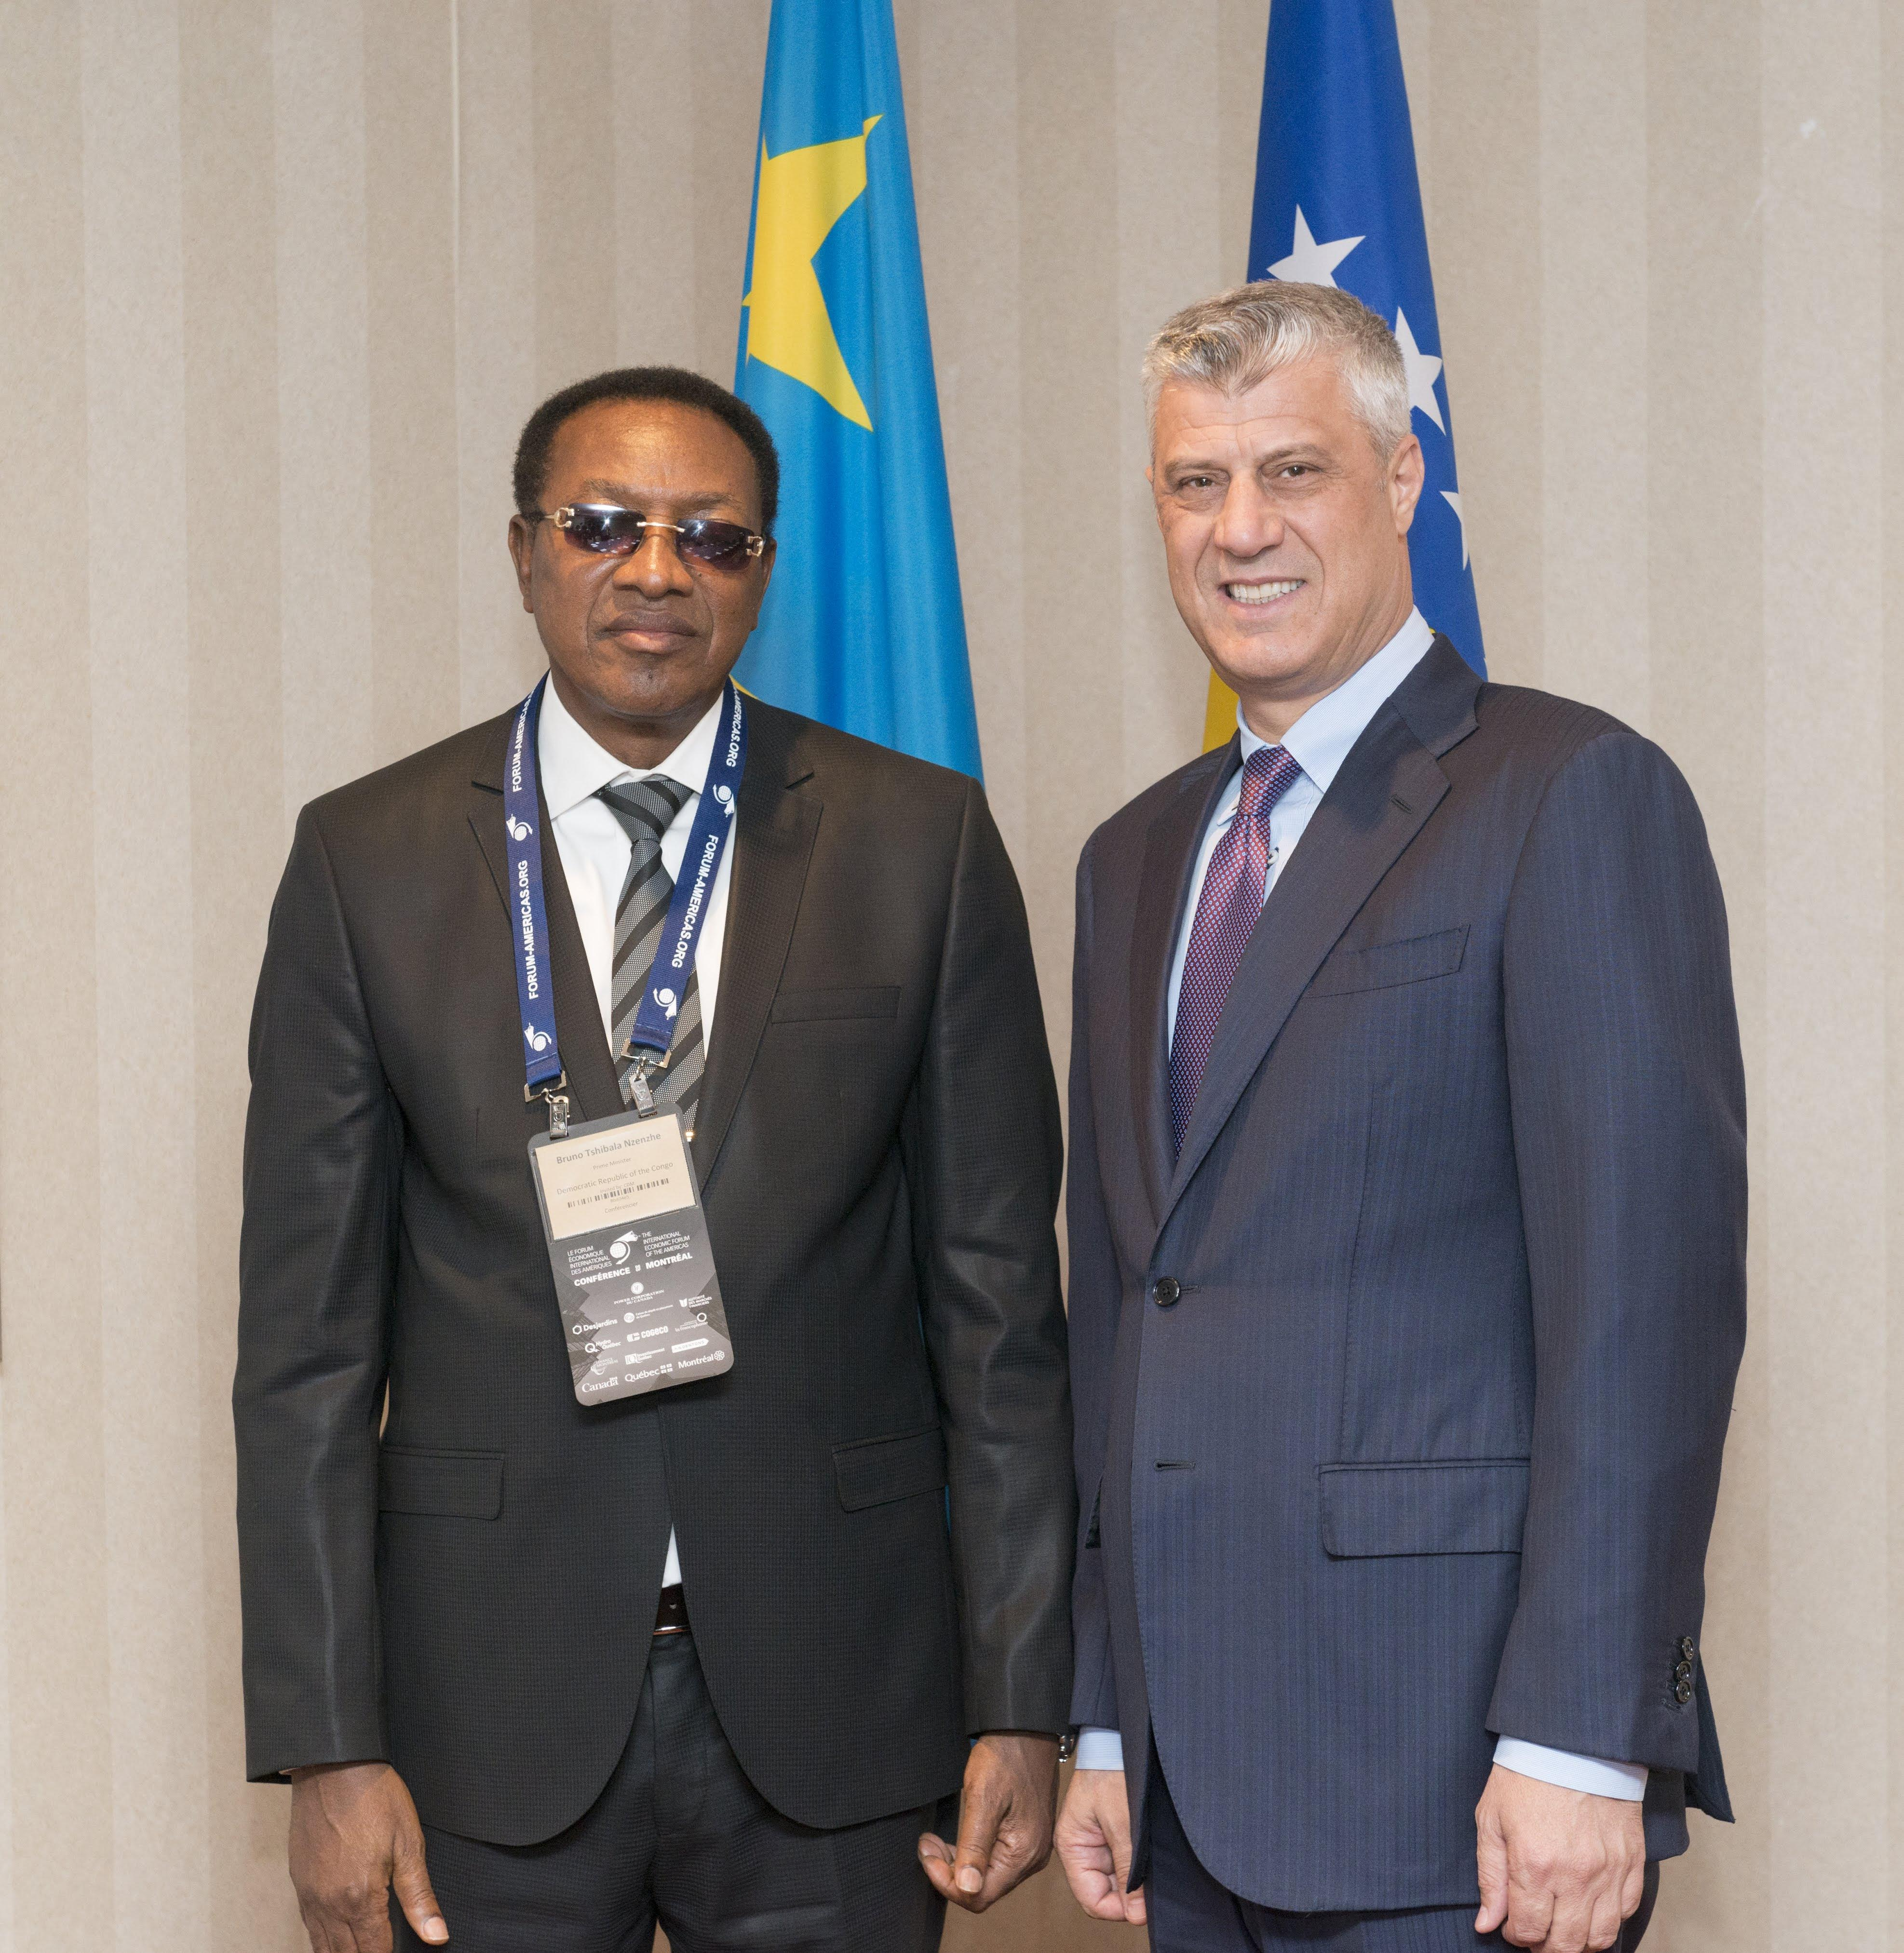 Bruno Tshibala Nzenze, Prime Minister of the Democratic Republic of the Congo and Hashim Thaçi, President of Kosovo - Conference of Montreal 2018